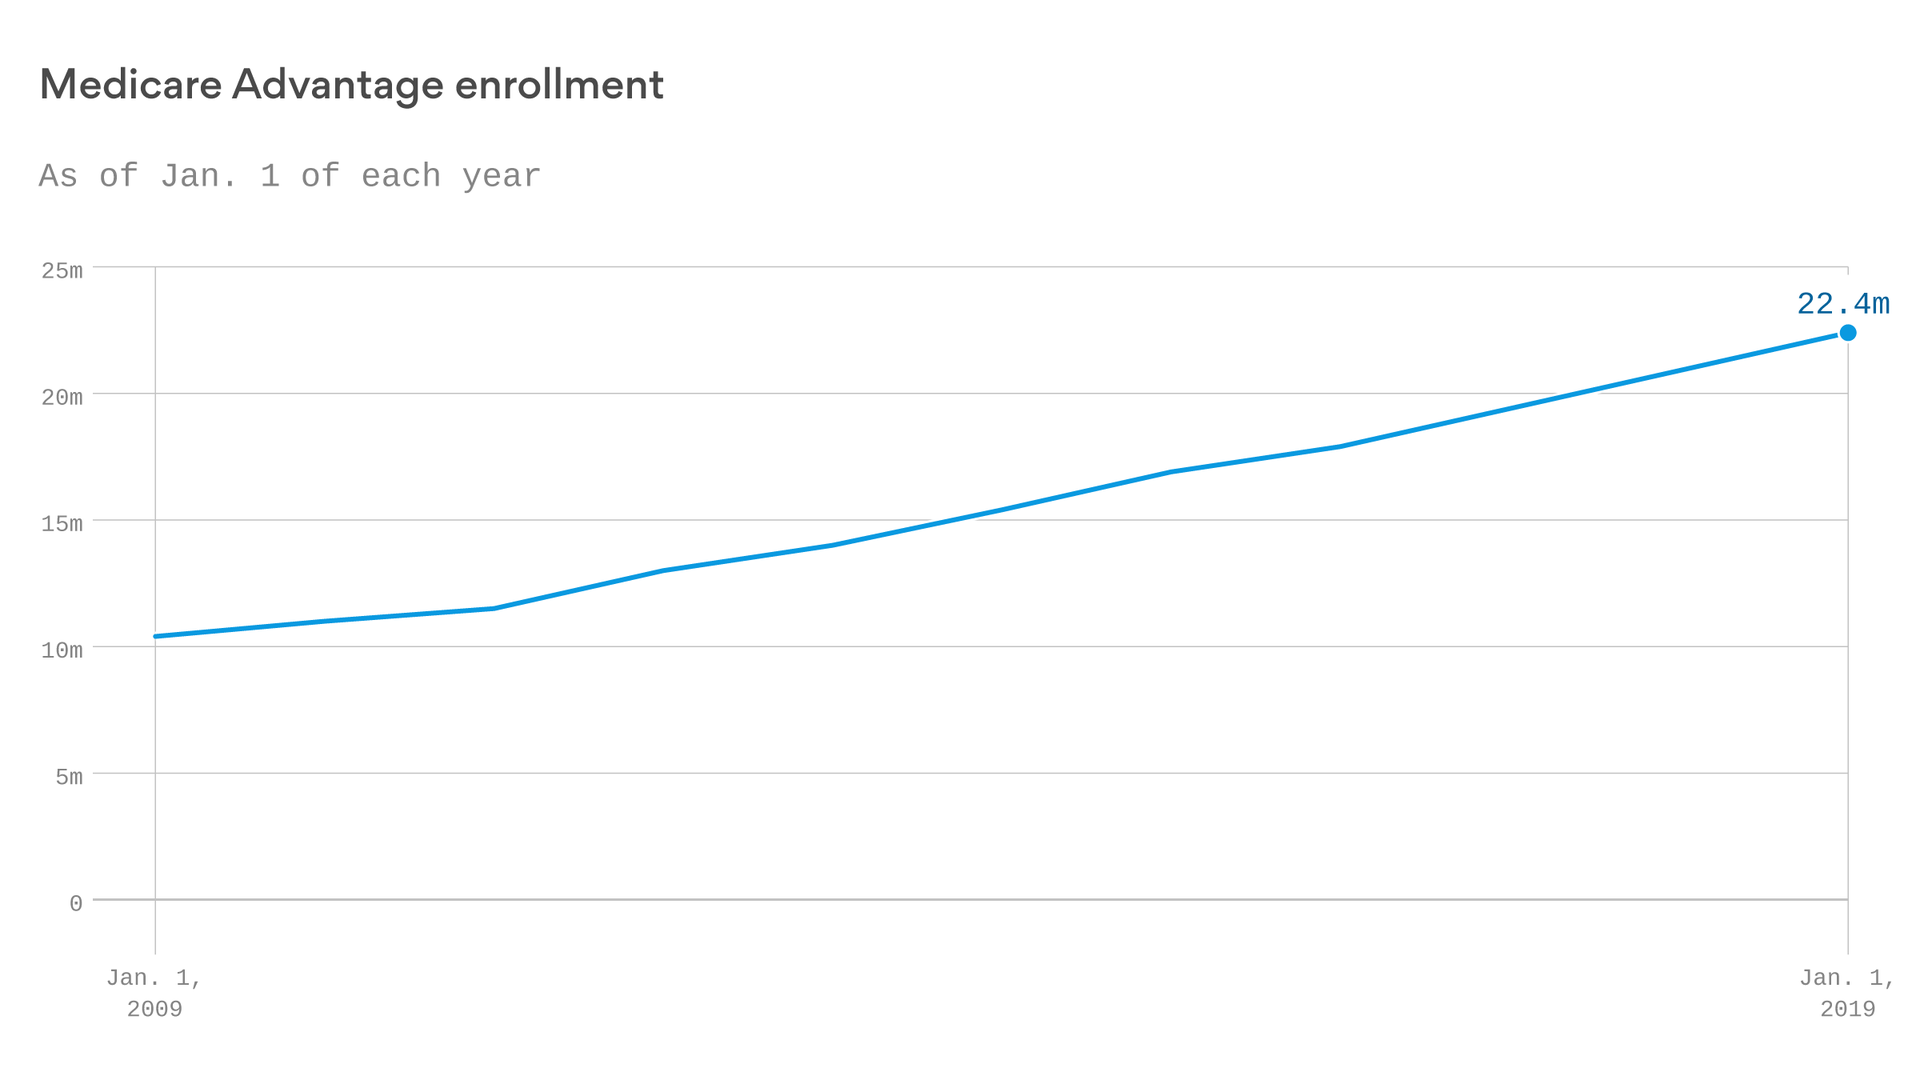 Medicare Advantage enrollment is not slowing down